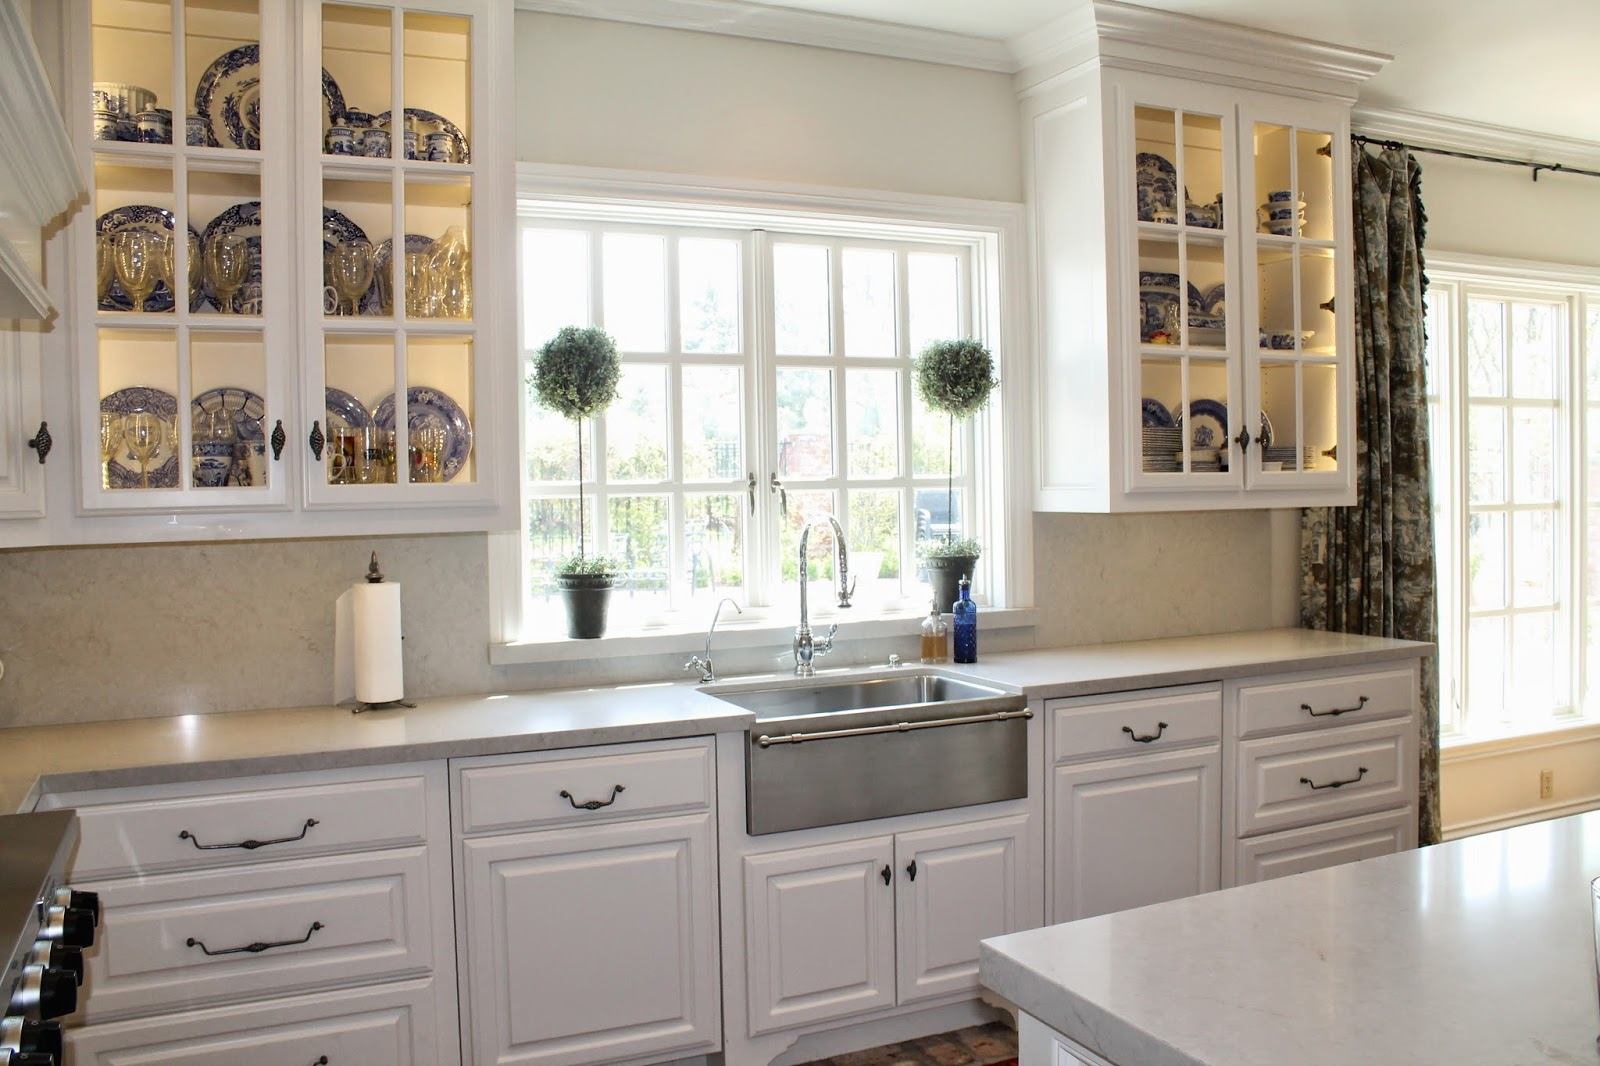 The Story Of An Eleven Gables Kitchen Remodel: It Is Finished!